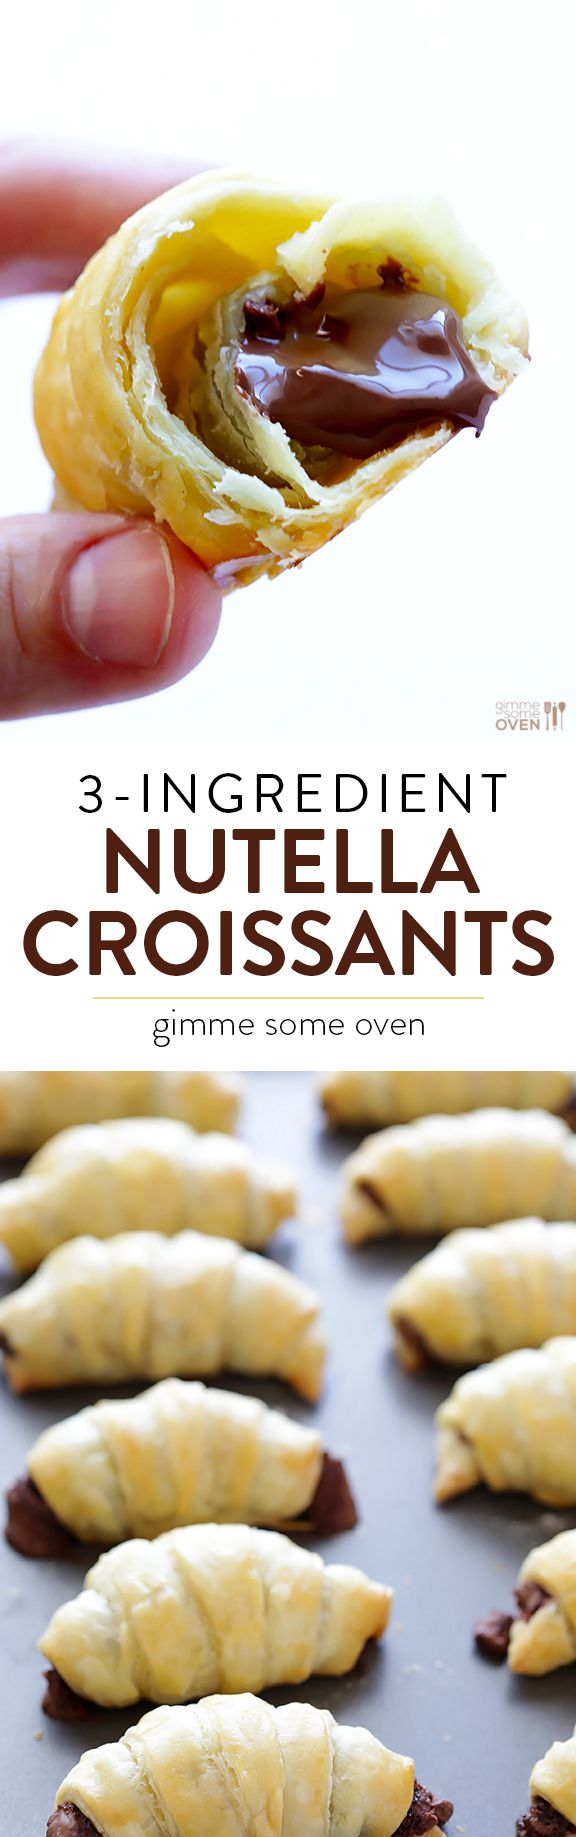 All you need are 3 ingredients to make these easy and delicious treats! | gimmesomeoven.com